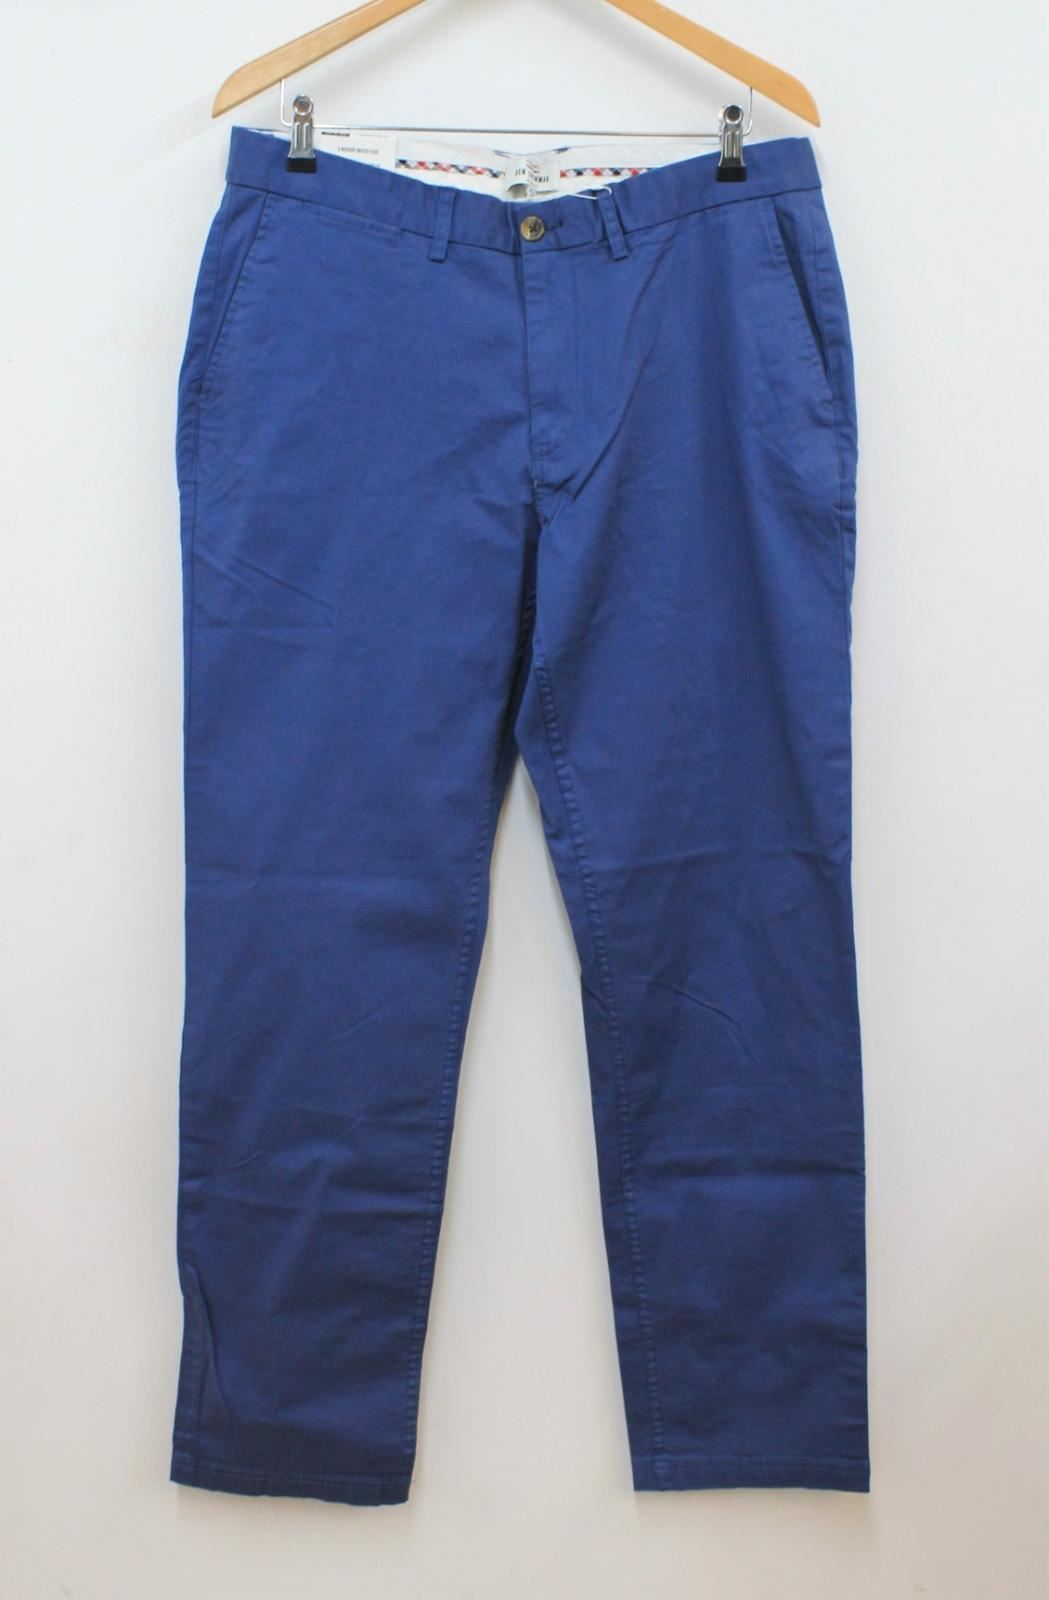 BEN-SHERMAN-Men-039-s-Stretch-Slim-Fit-Washed-Blue-Chinos-Trousers-W36-L32-BNWT